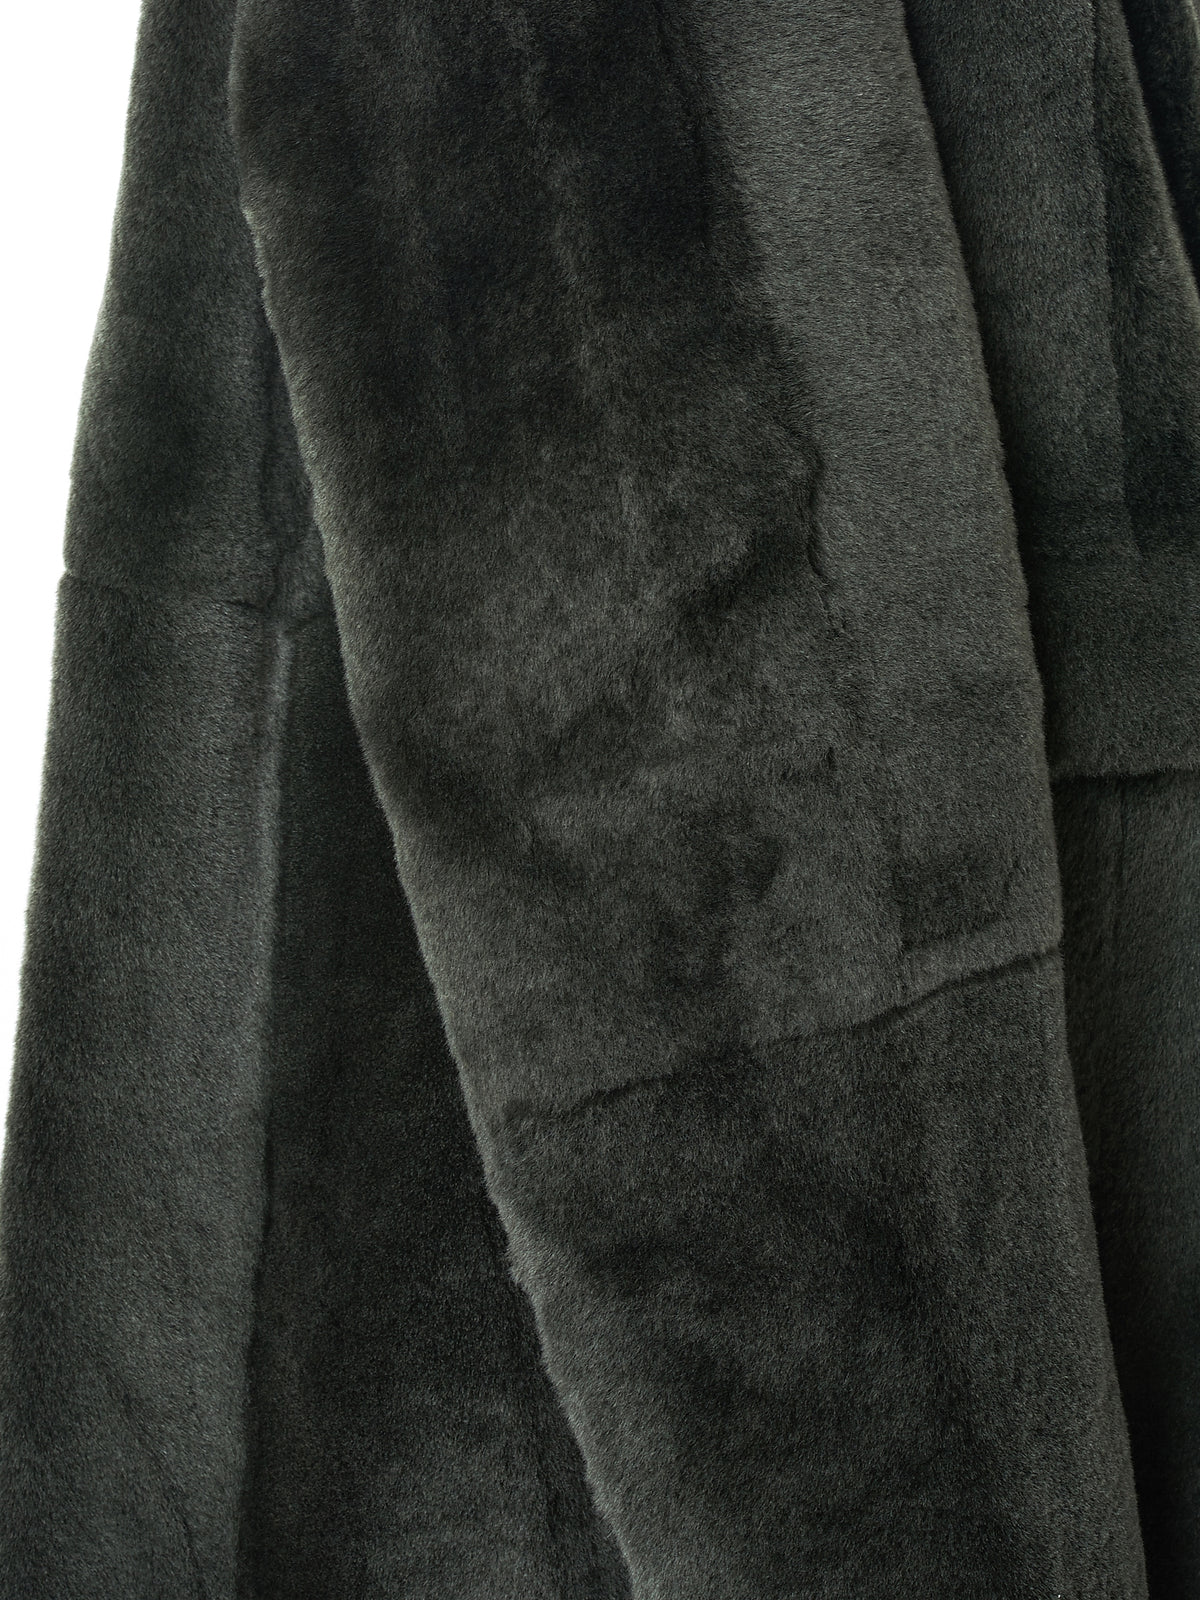 Sean Suen Shearling Coat - Hlorenzo Detail 2